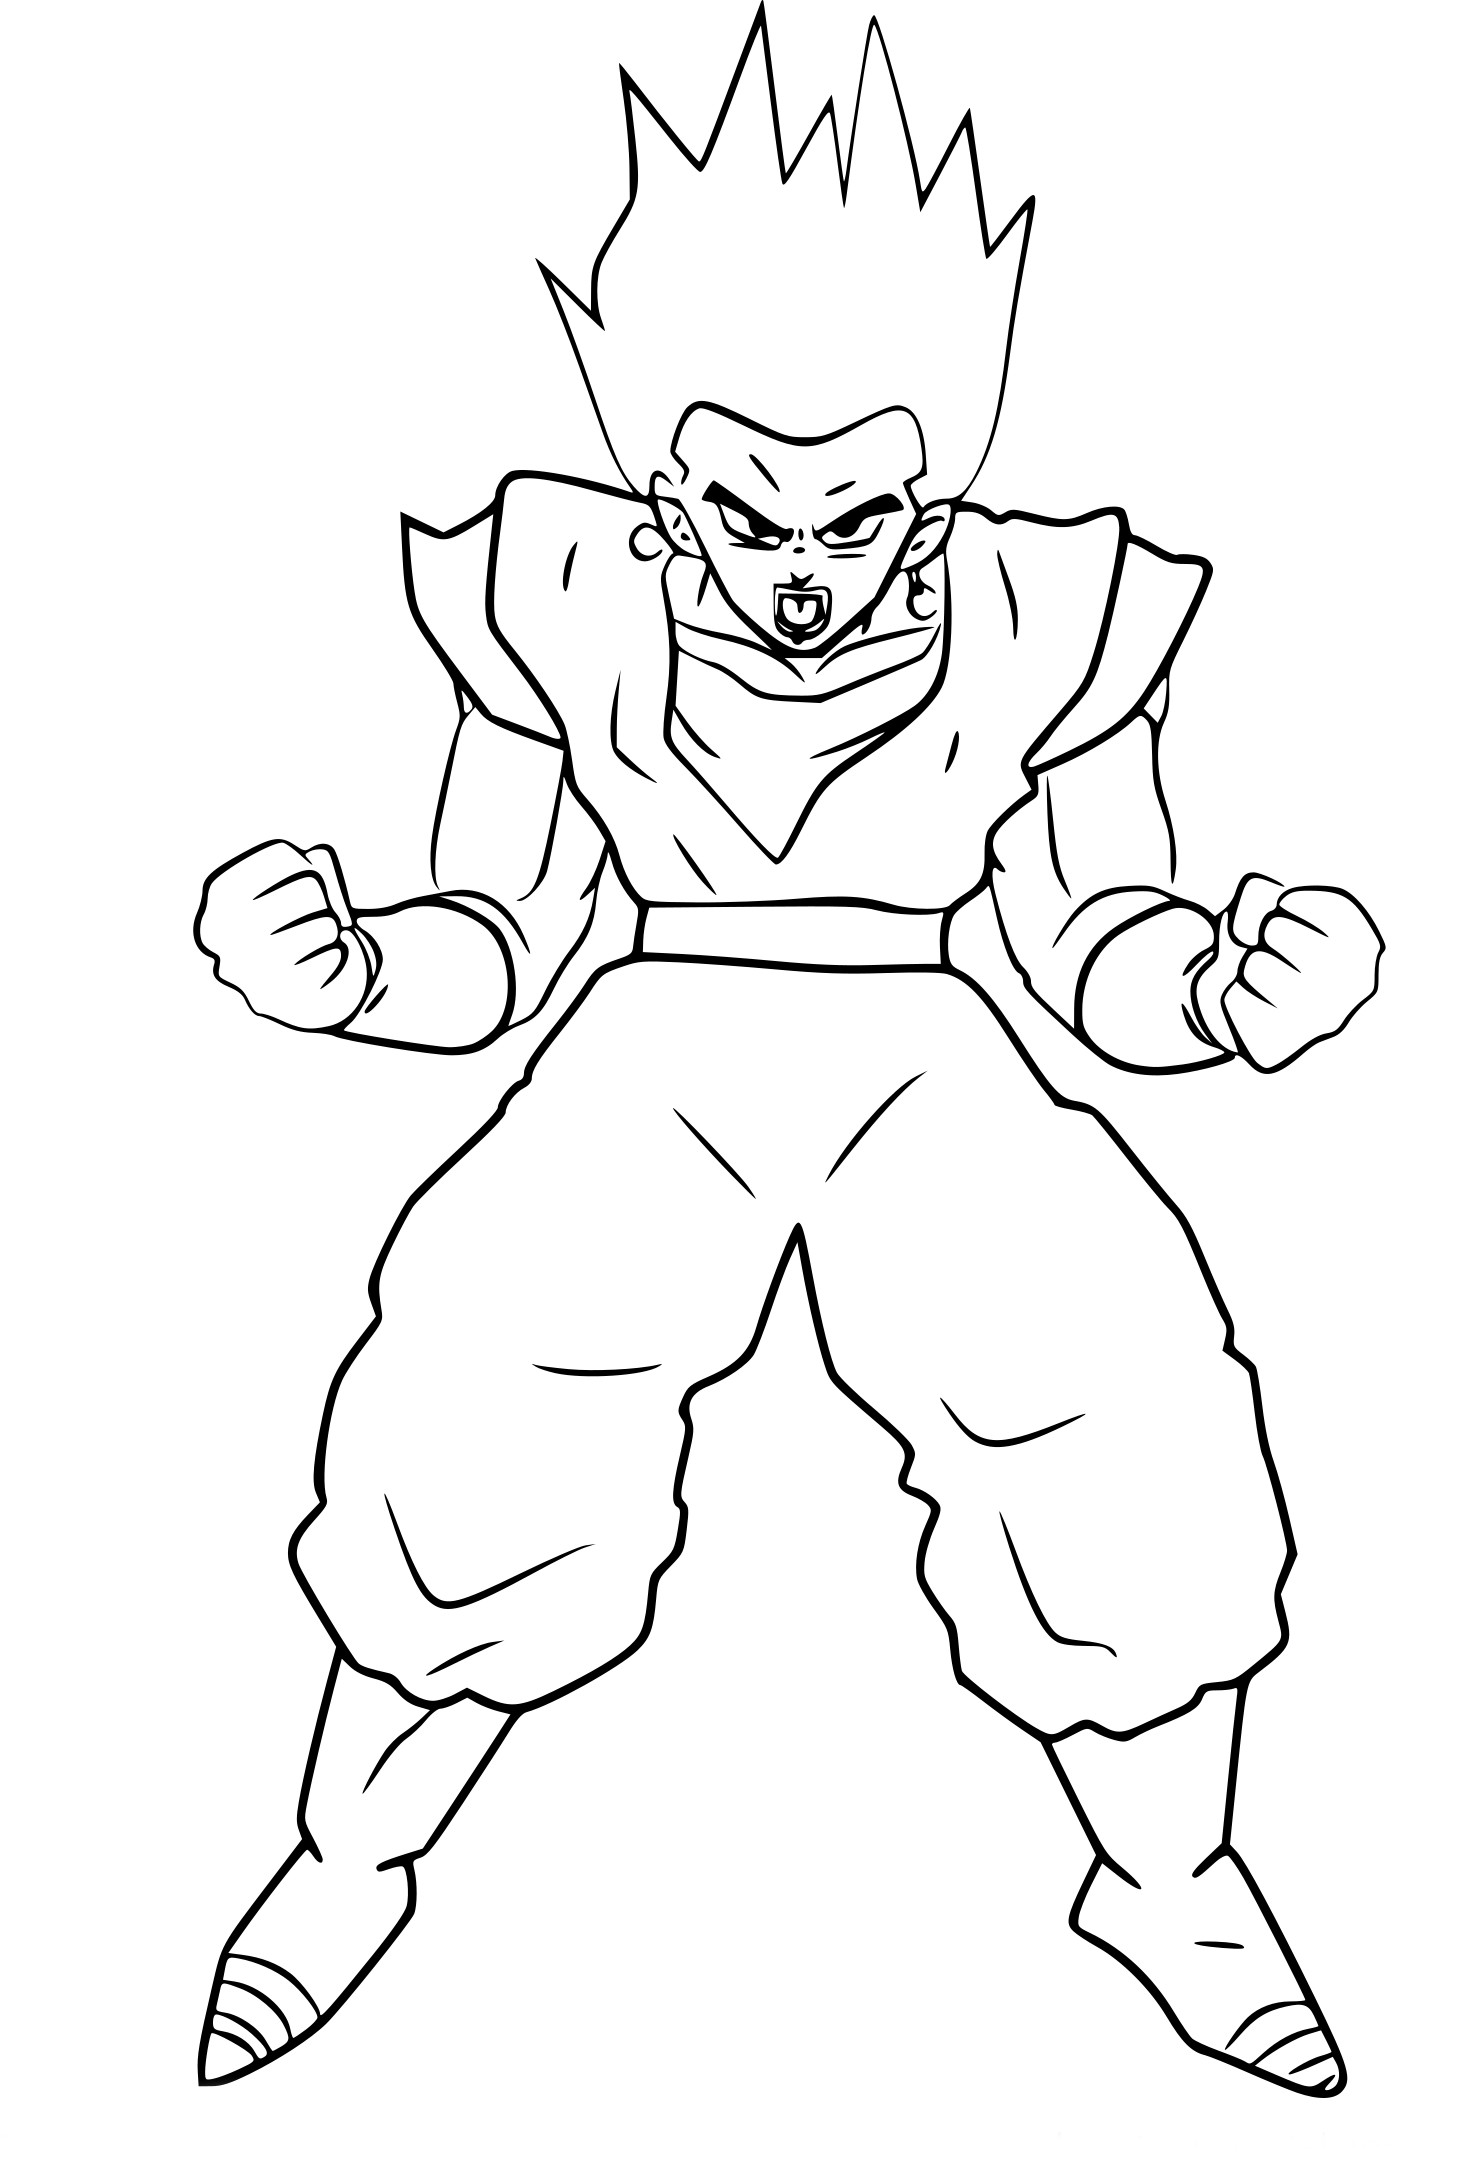 Coloriage vegeto dragon ball z imprimer - Dessin de dragon ball super ...